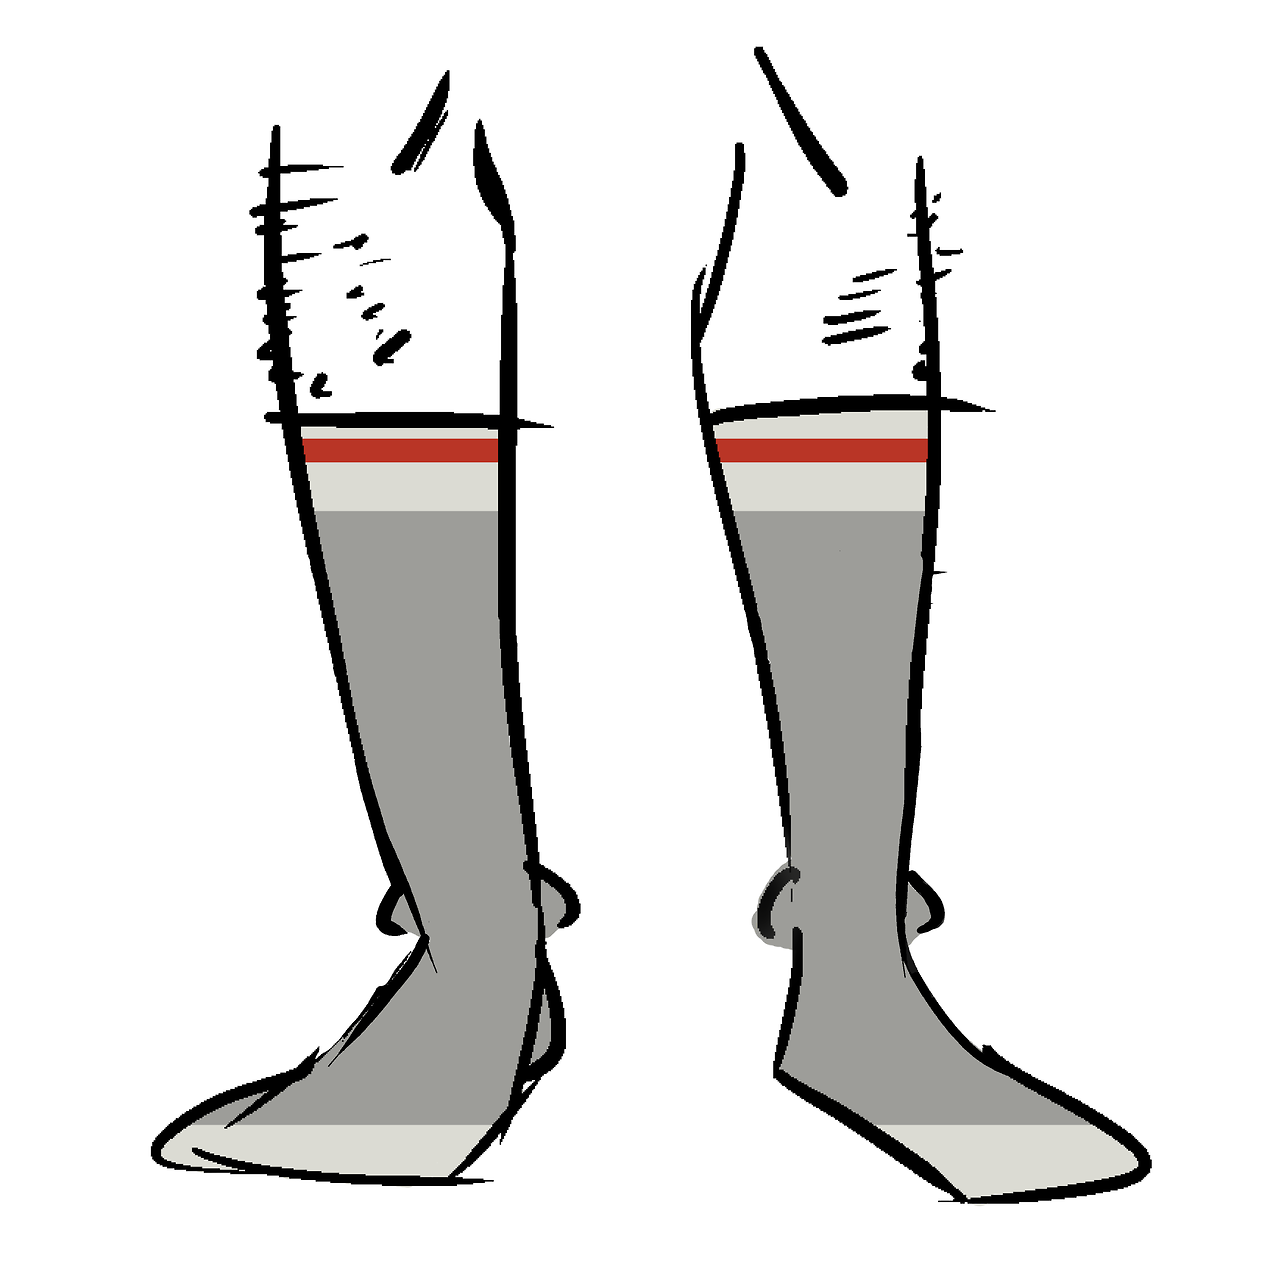 Grey socks with red stripes around the calves